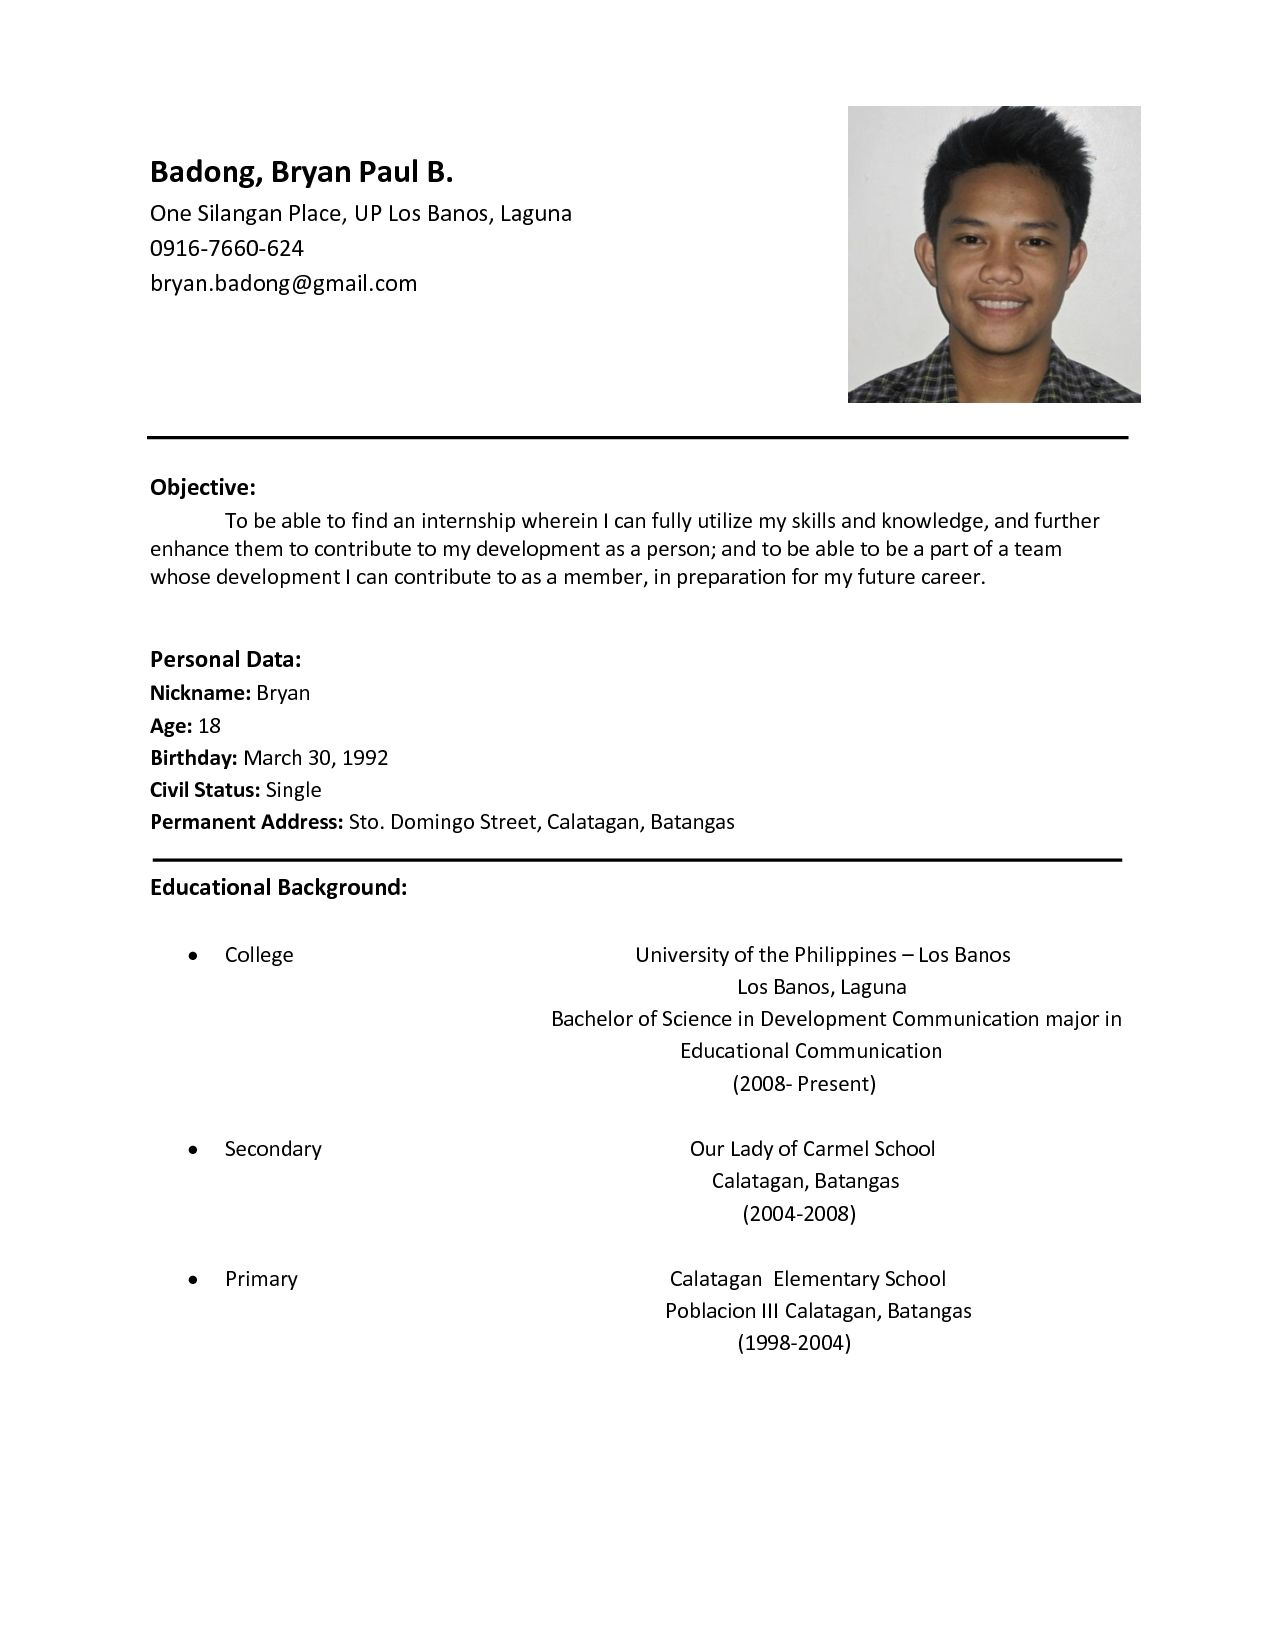 Proper resume job format examples data sample resume new example of proper resume job format examples data sample resume new example of a resume format thecheapjerseys